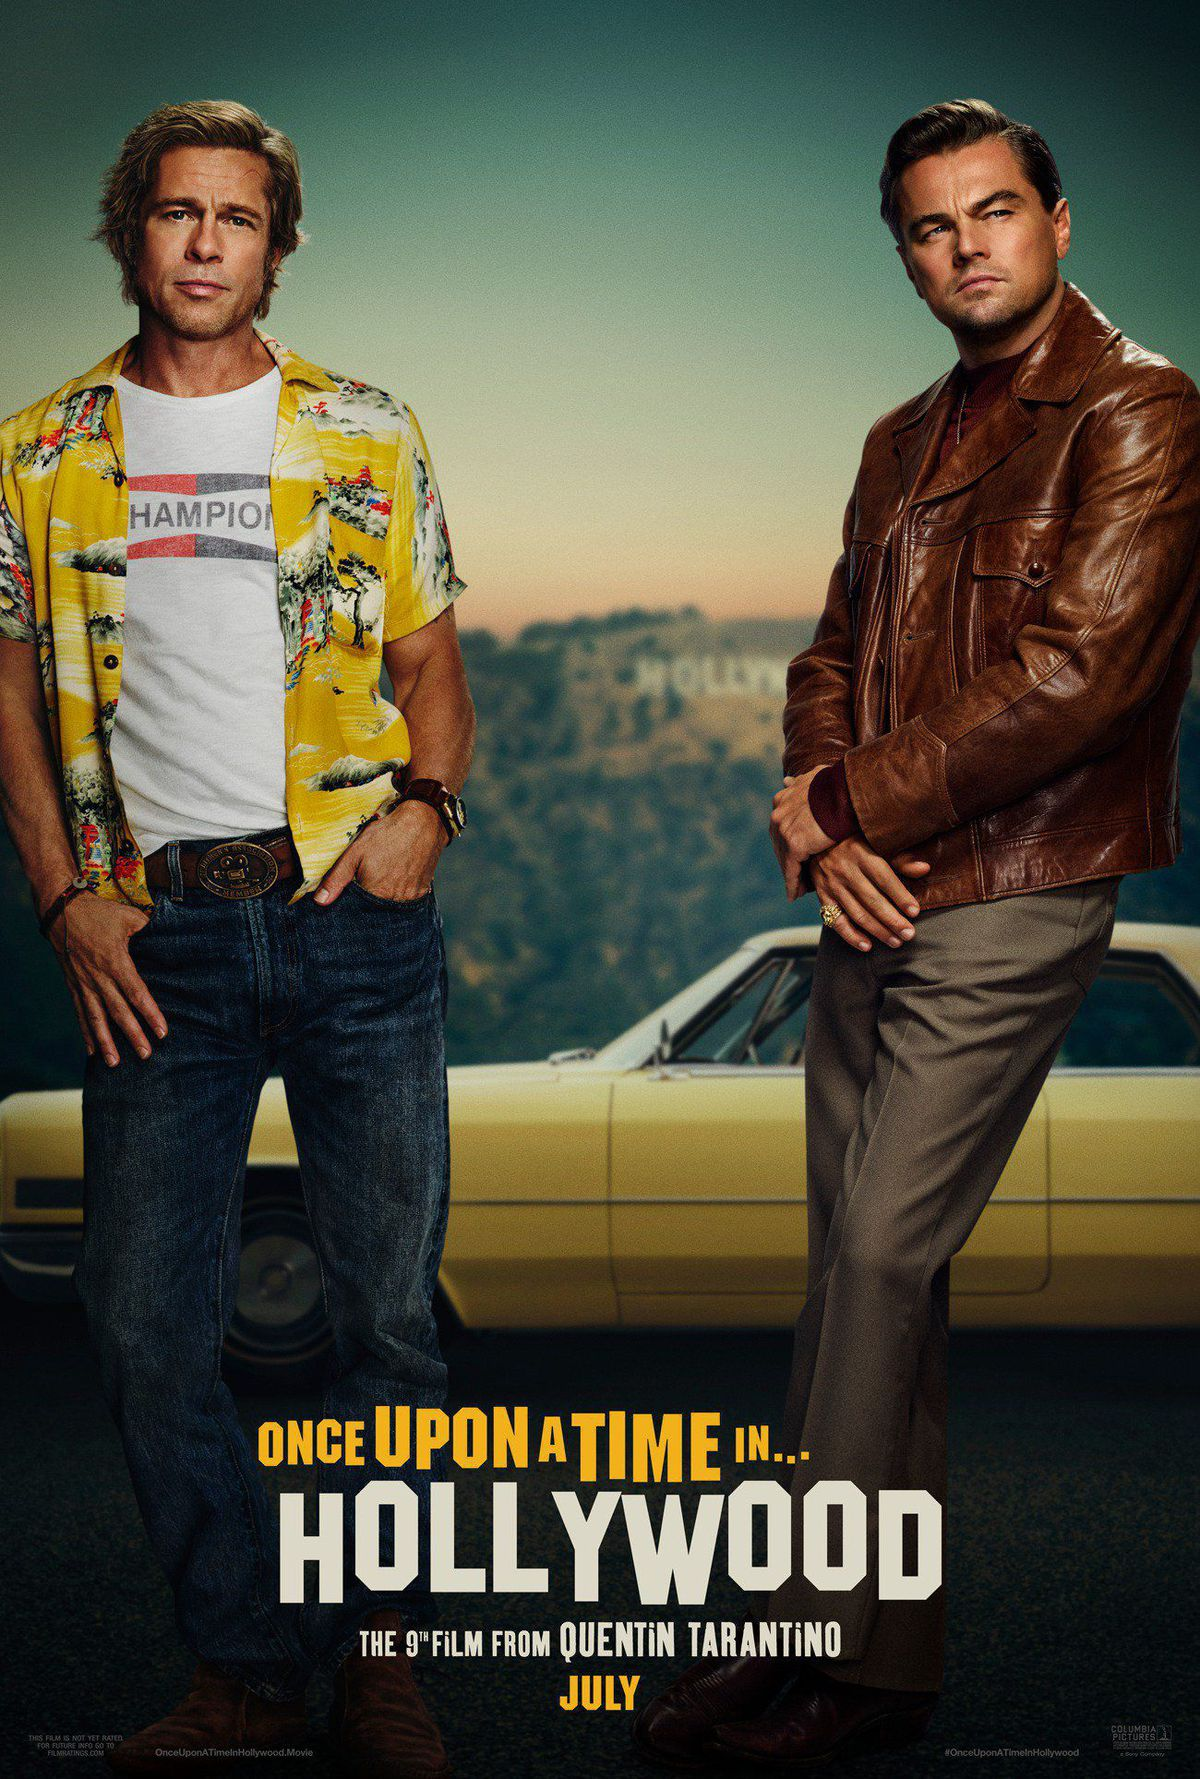 The full teaser poster for Once Upon a Time in Hollywood, starring Brad Pitt (standing on the left) and Leonardo DiCaprio.